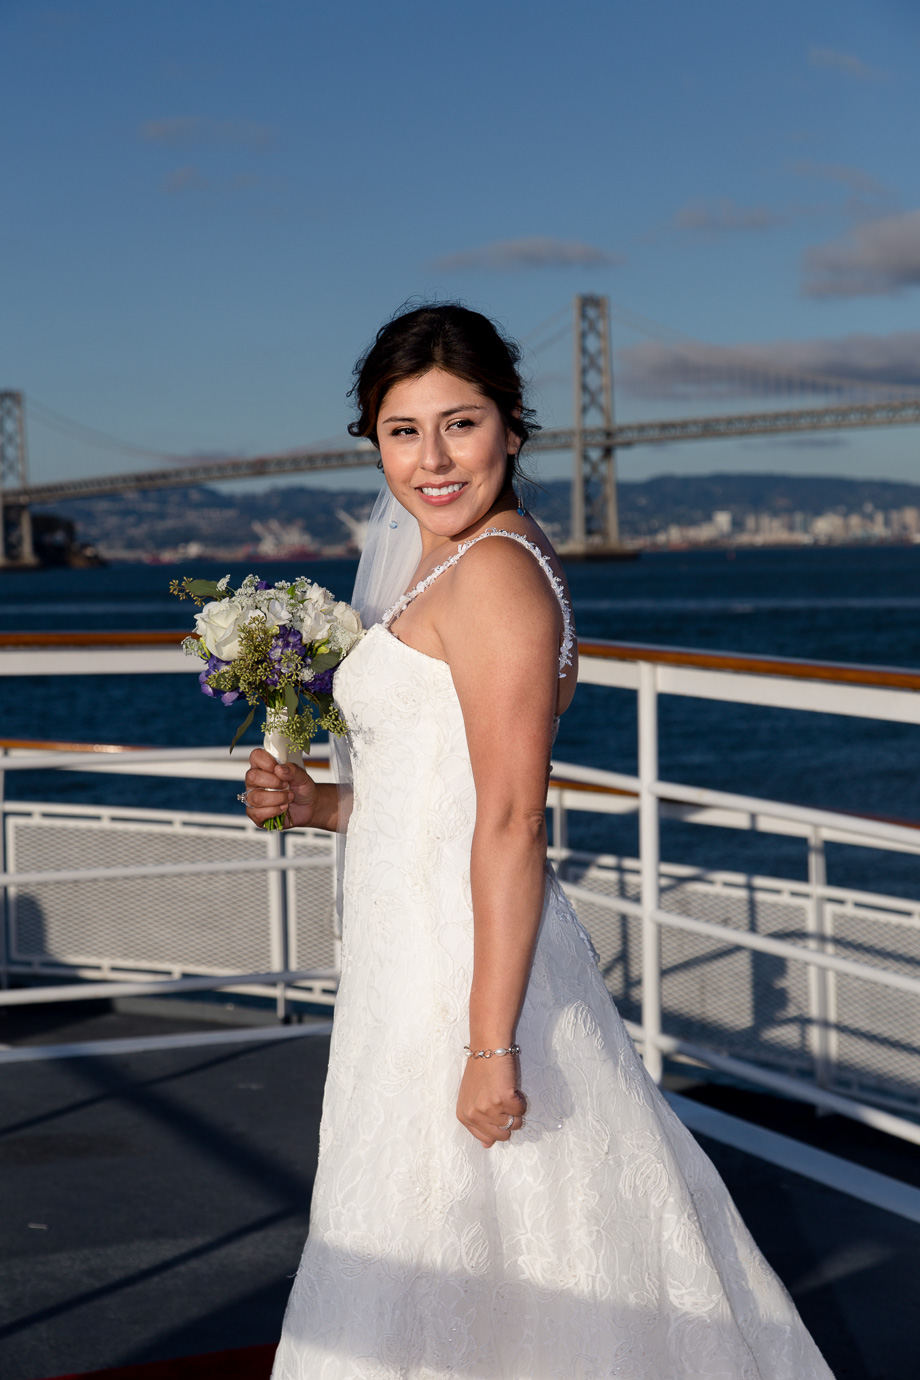 Portrait of the bride and her bouquet with the Bay Bridge in the background